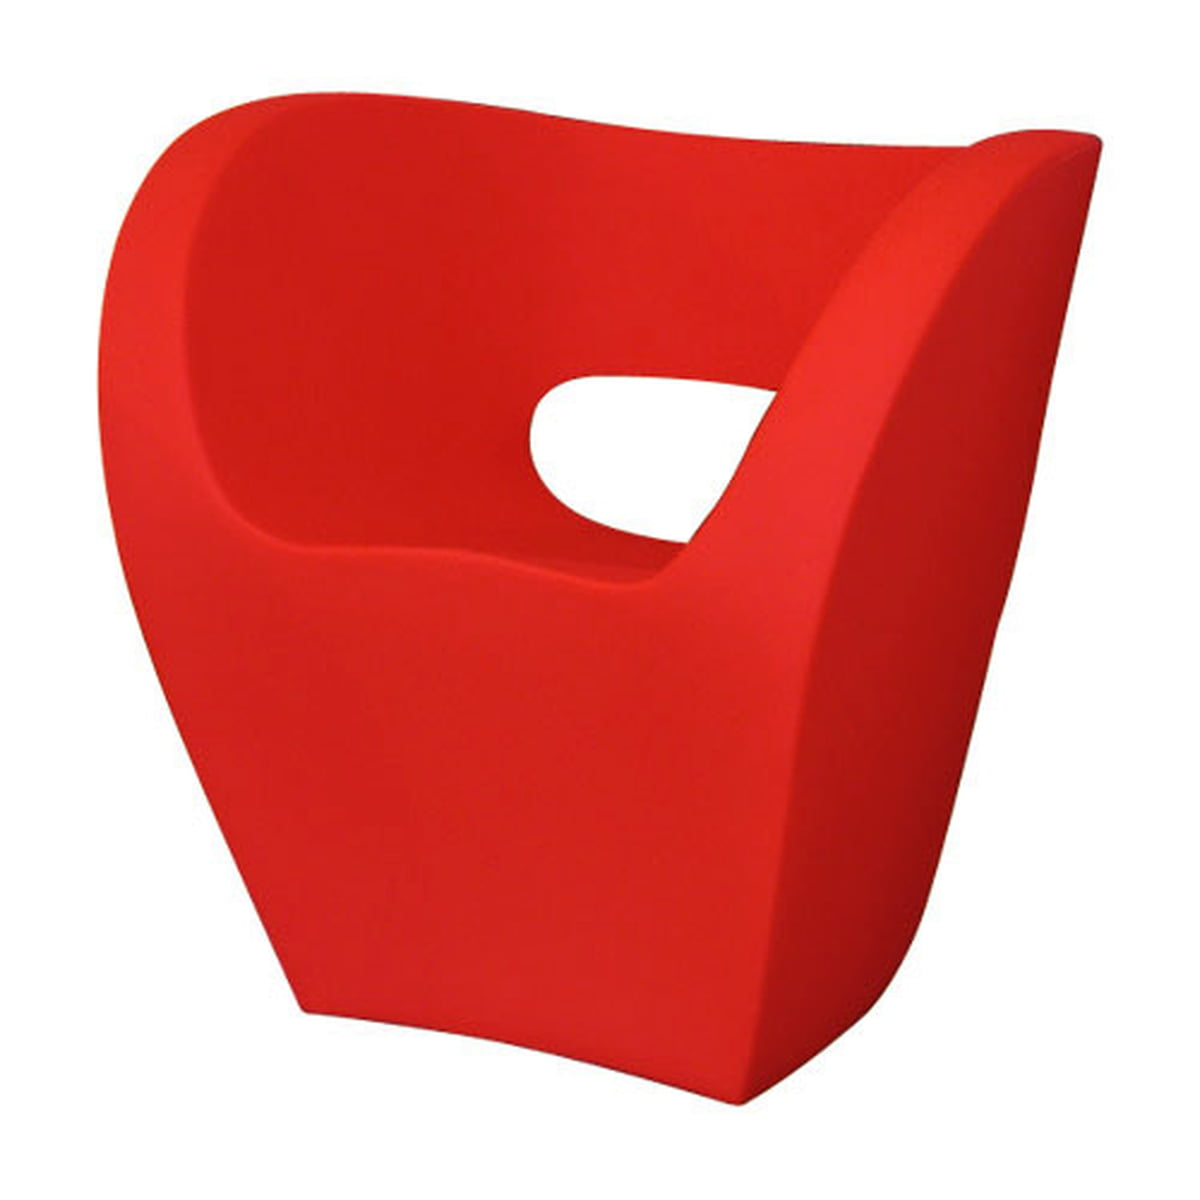 Victoria And Albert Armchair Moroso Shop